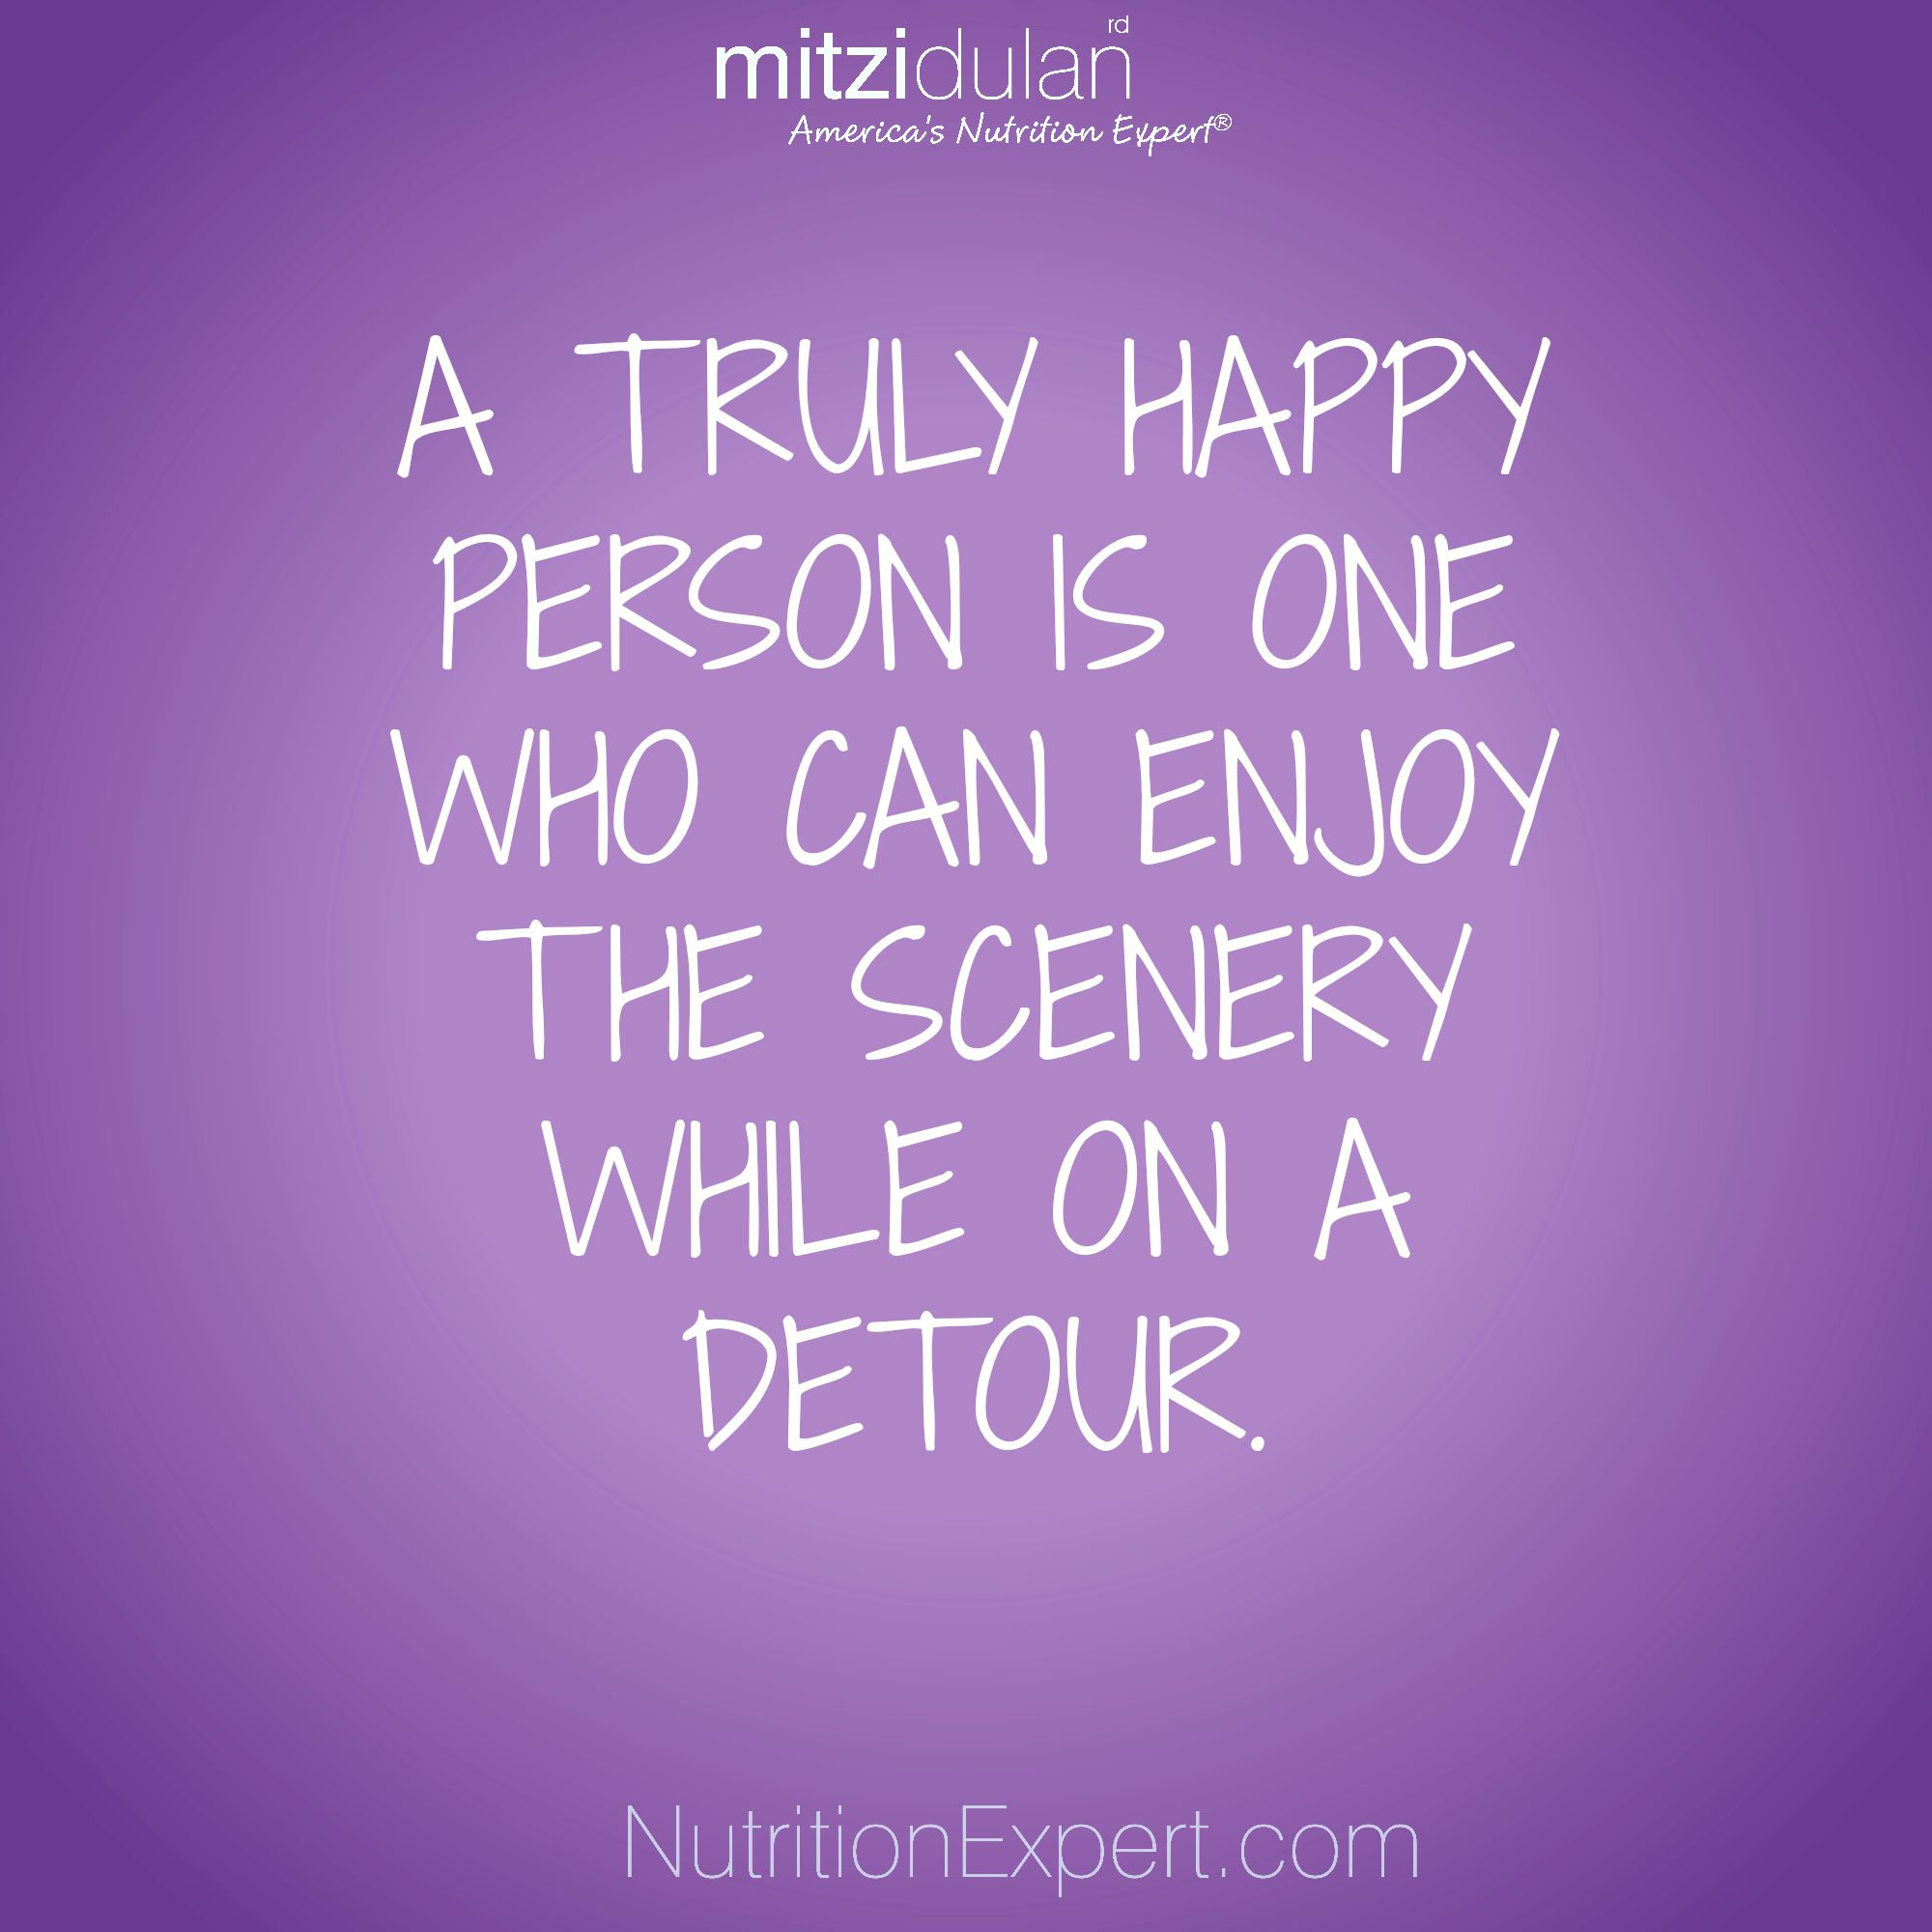 A Truly Happy Person Is One Who Can Enjoy The Scenery